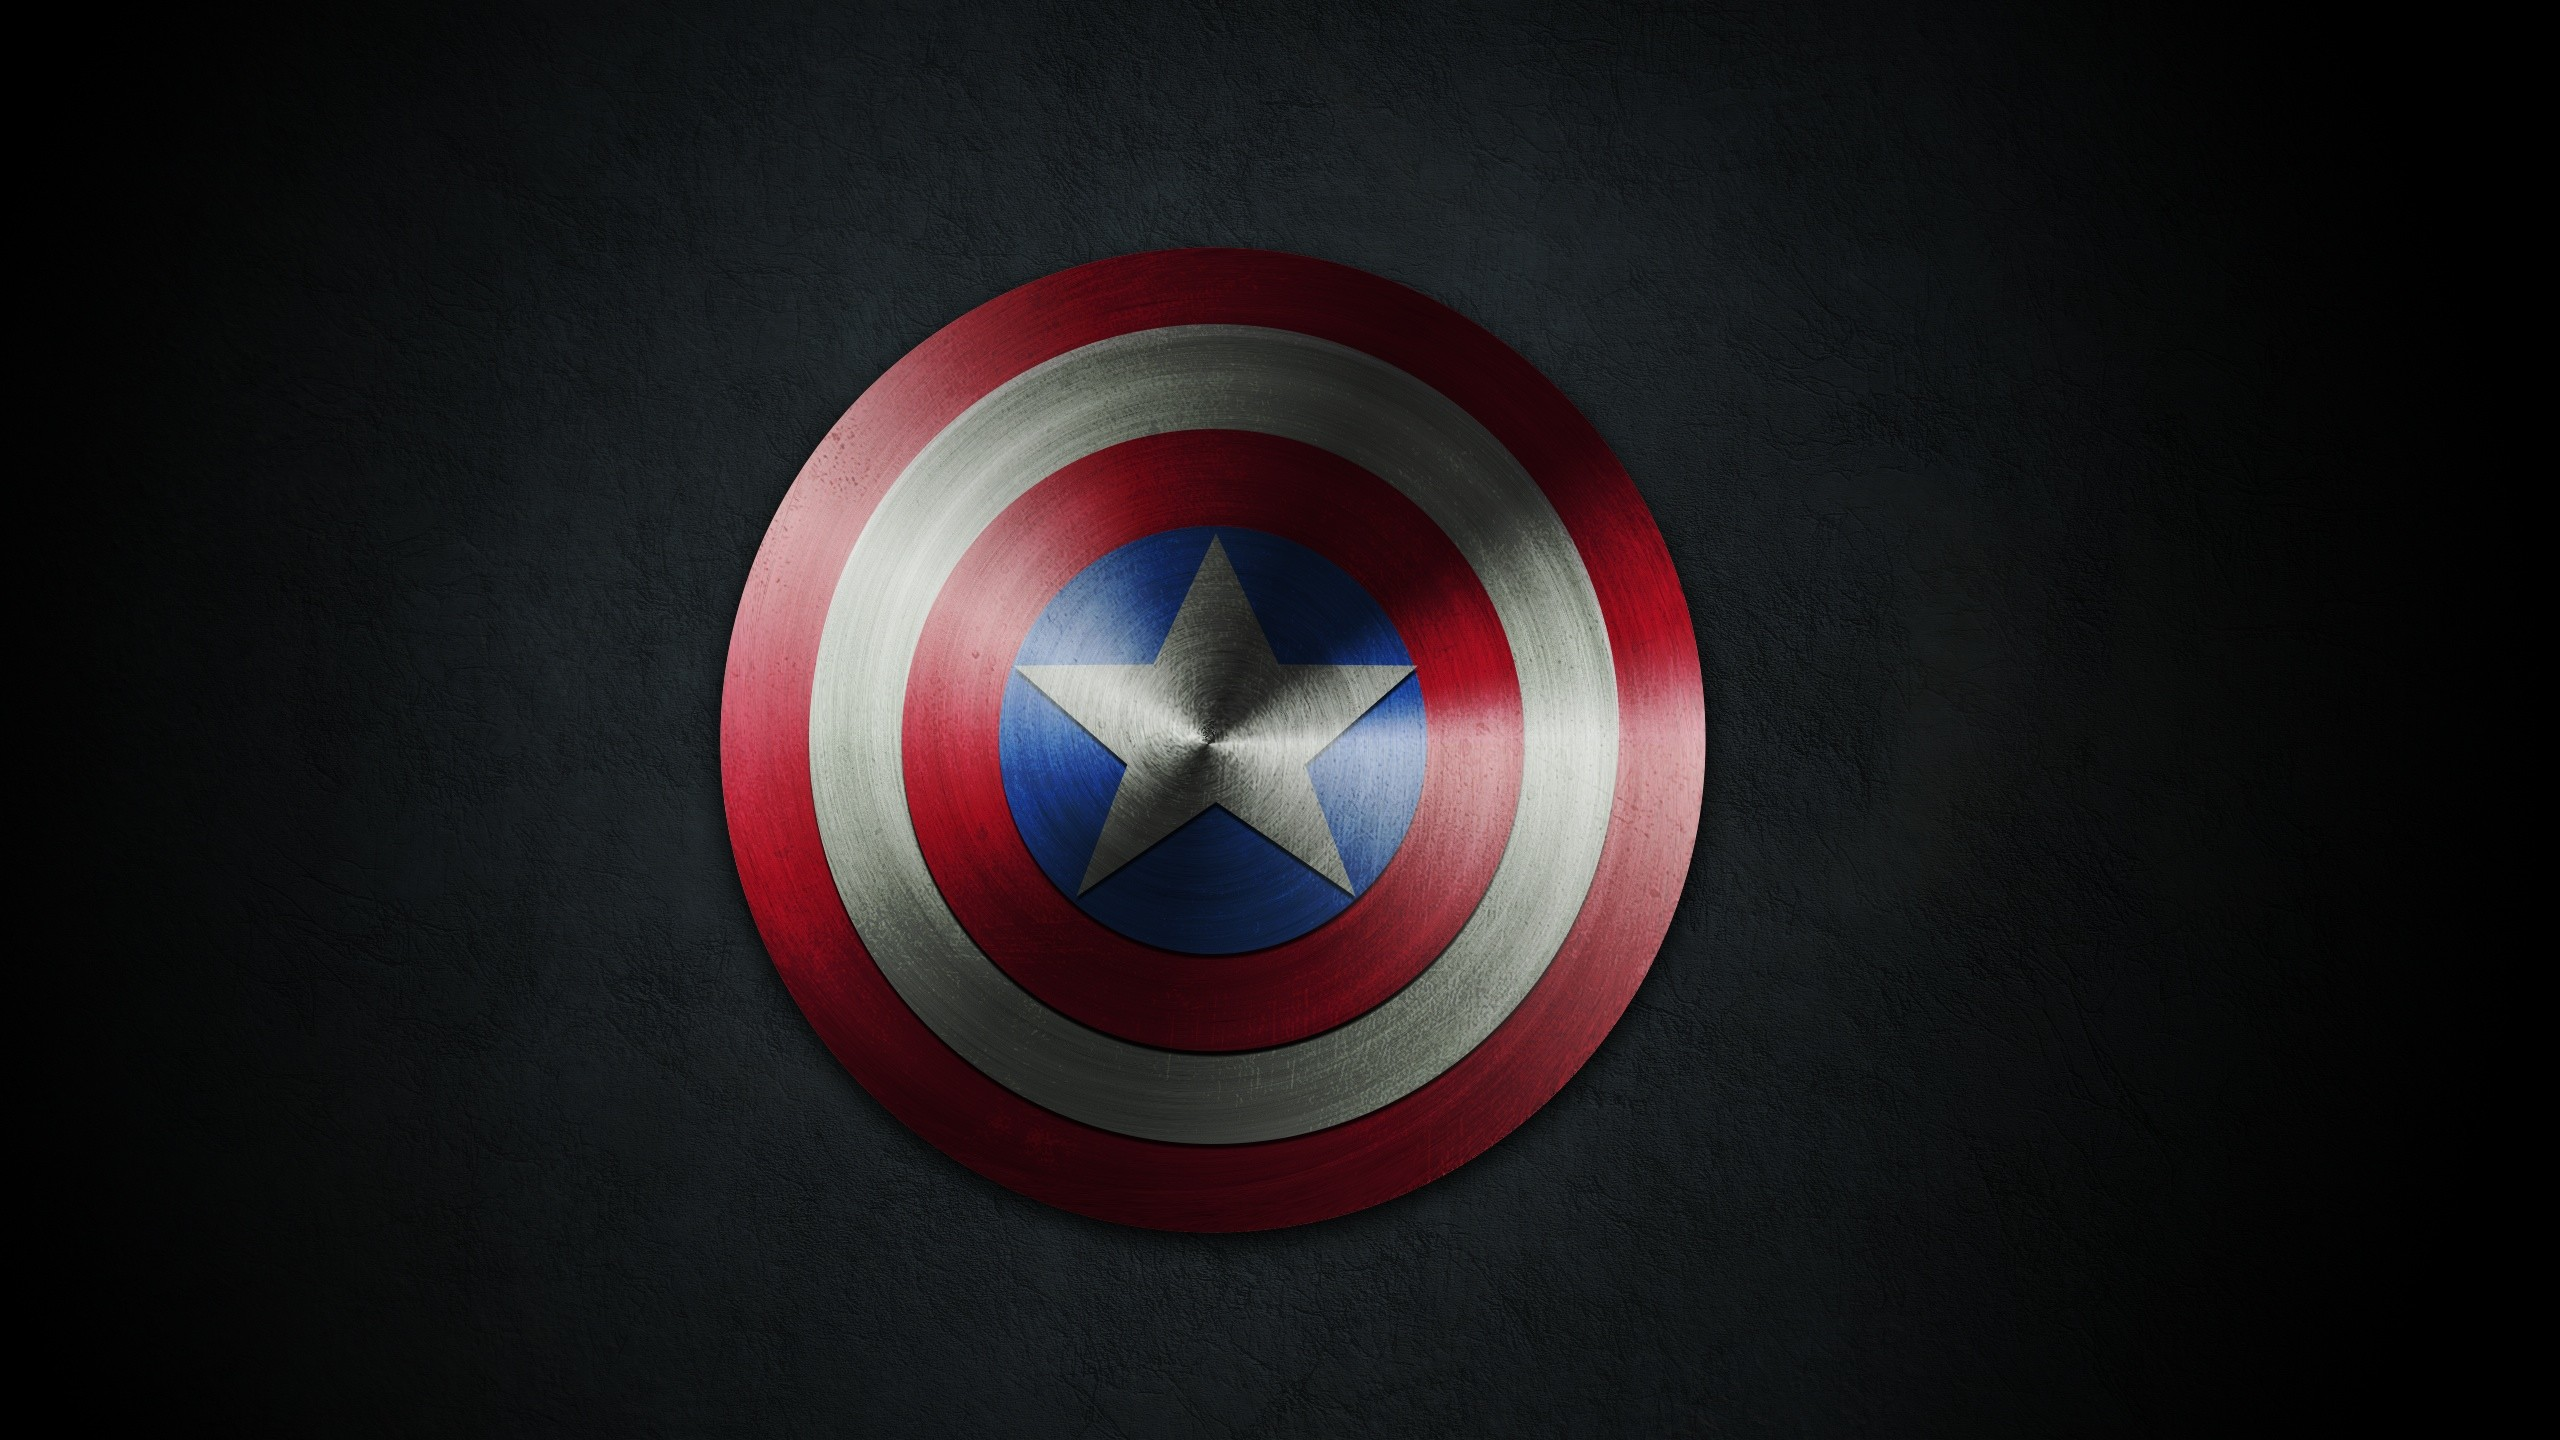 Res: 2560x1440, Captain America Shield 28 Hd Wallpaper Trendy Wallpapers